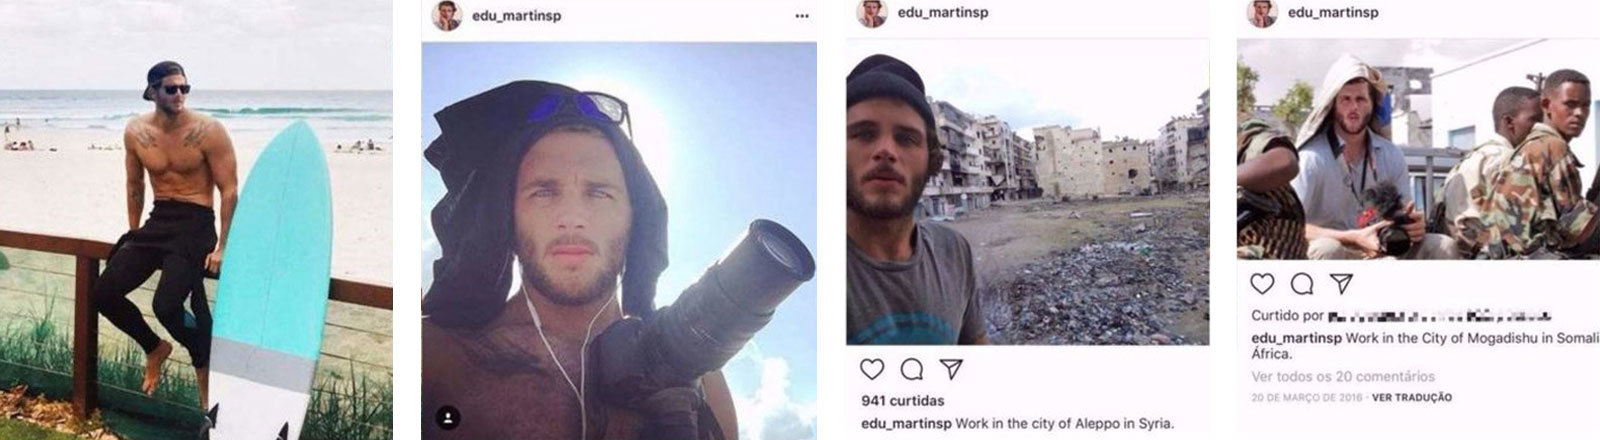 "Bilder von den Social-Media-Accounts der Fake-Identität ""Eduardo Martins"""